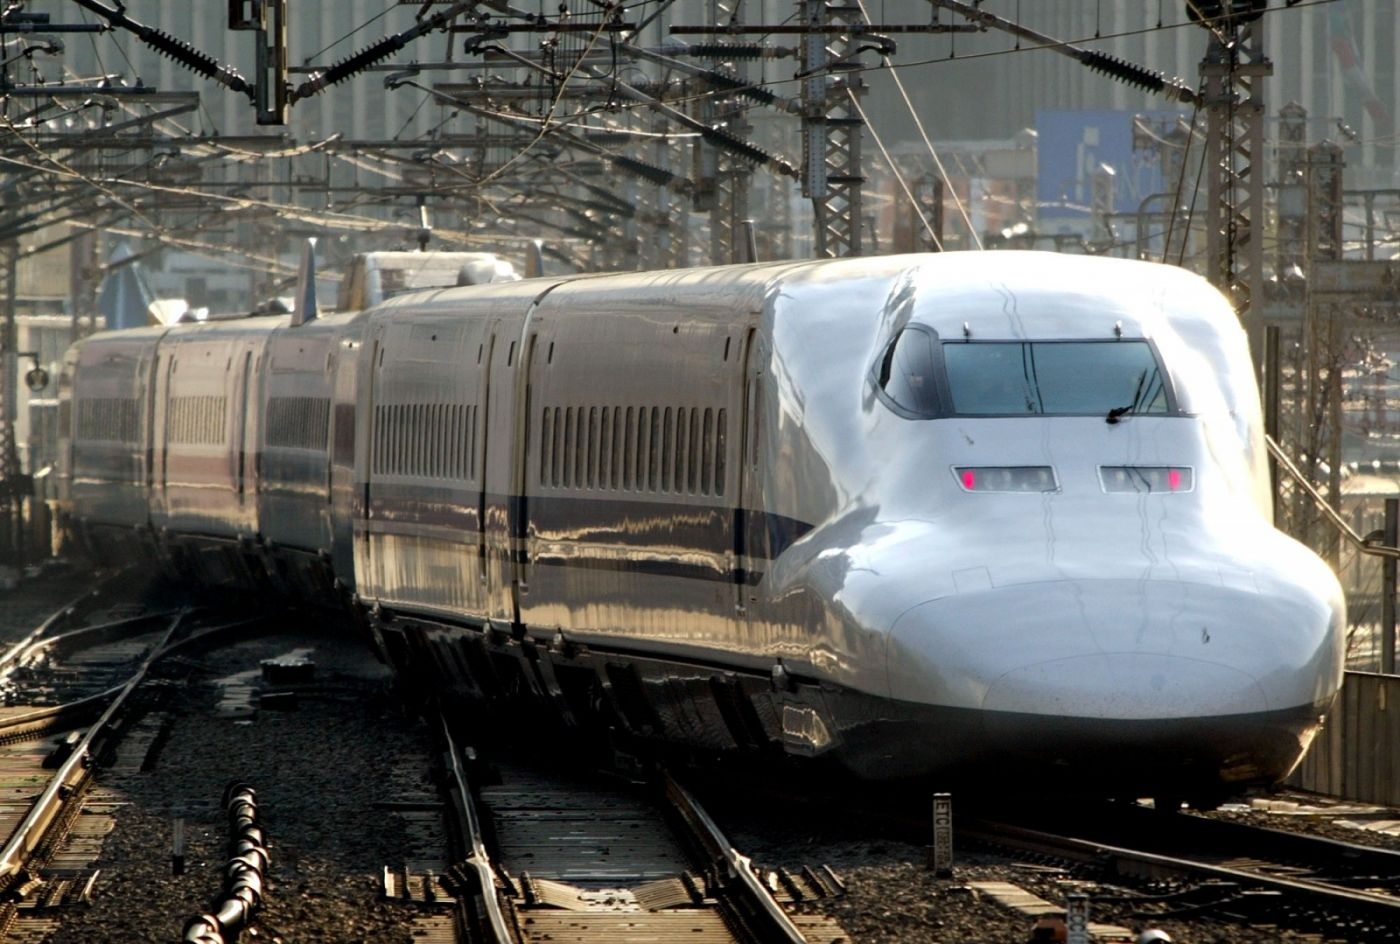 Drawn train japanese That City Everything Train The